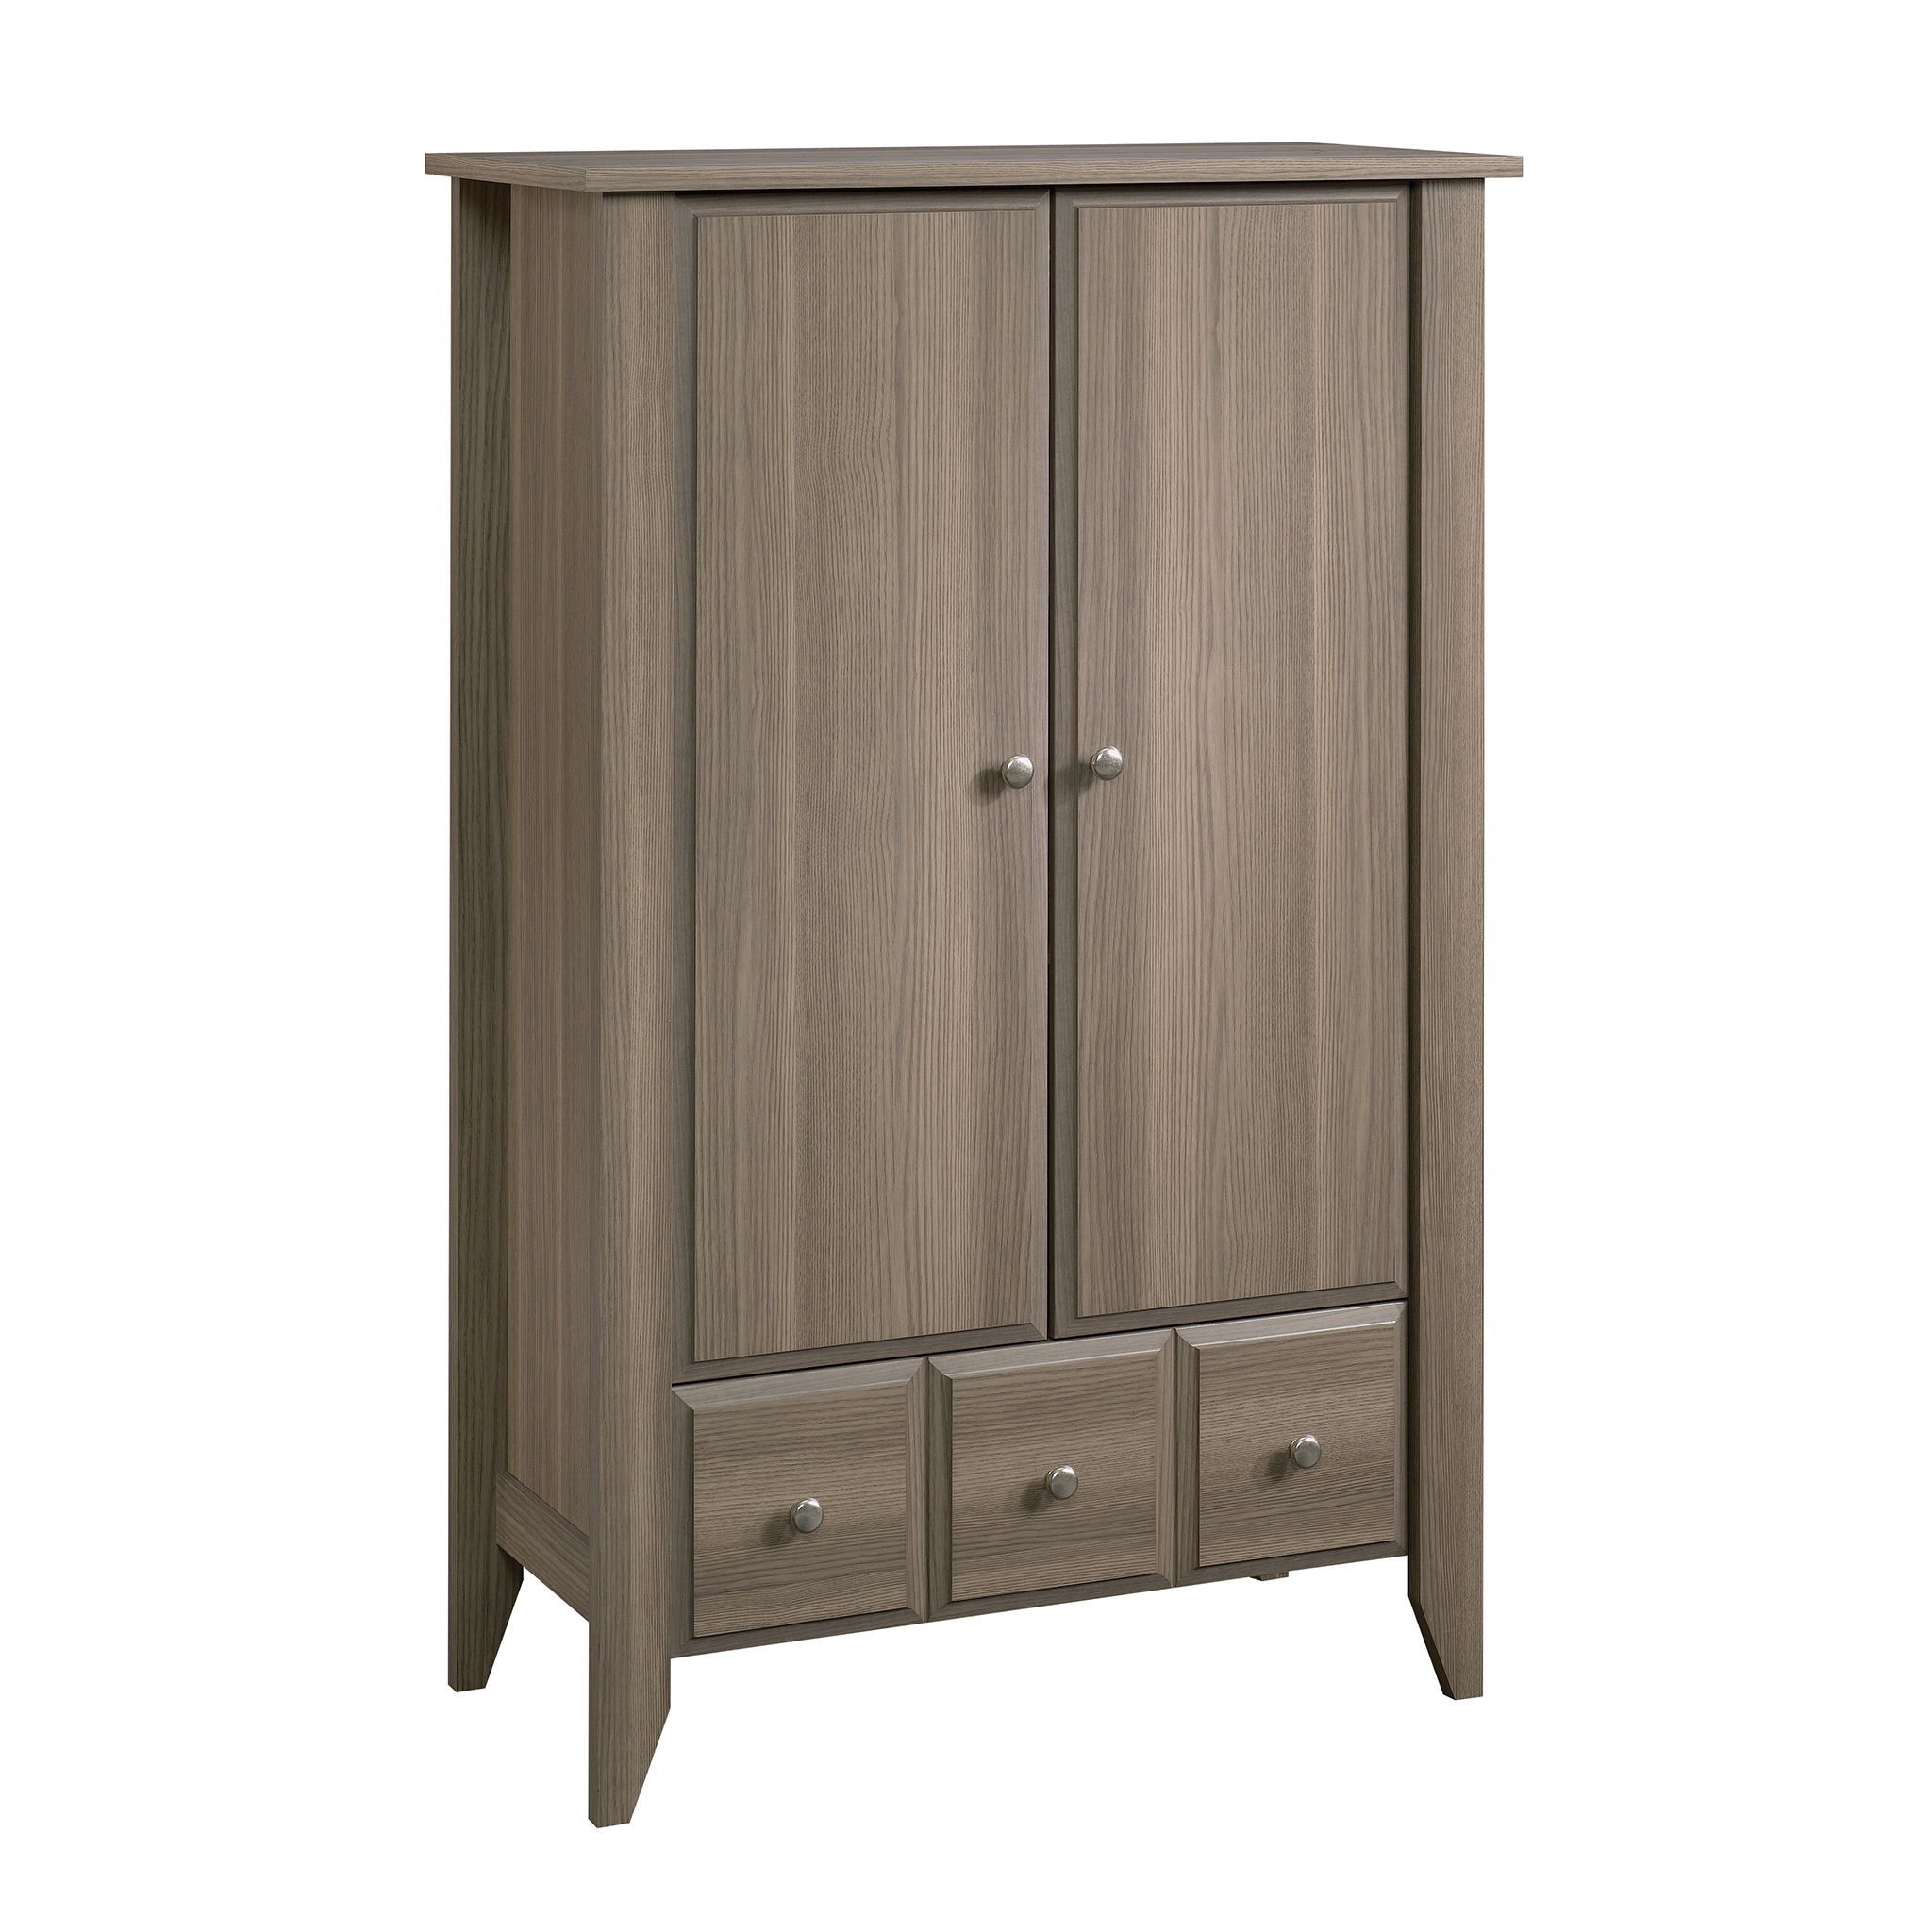 Superbe Sauder Shoal Creek Armoire, Diamond Ash Finish